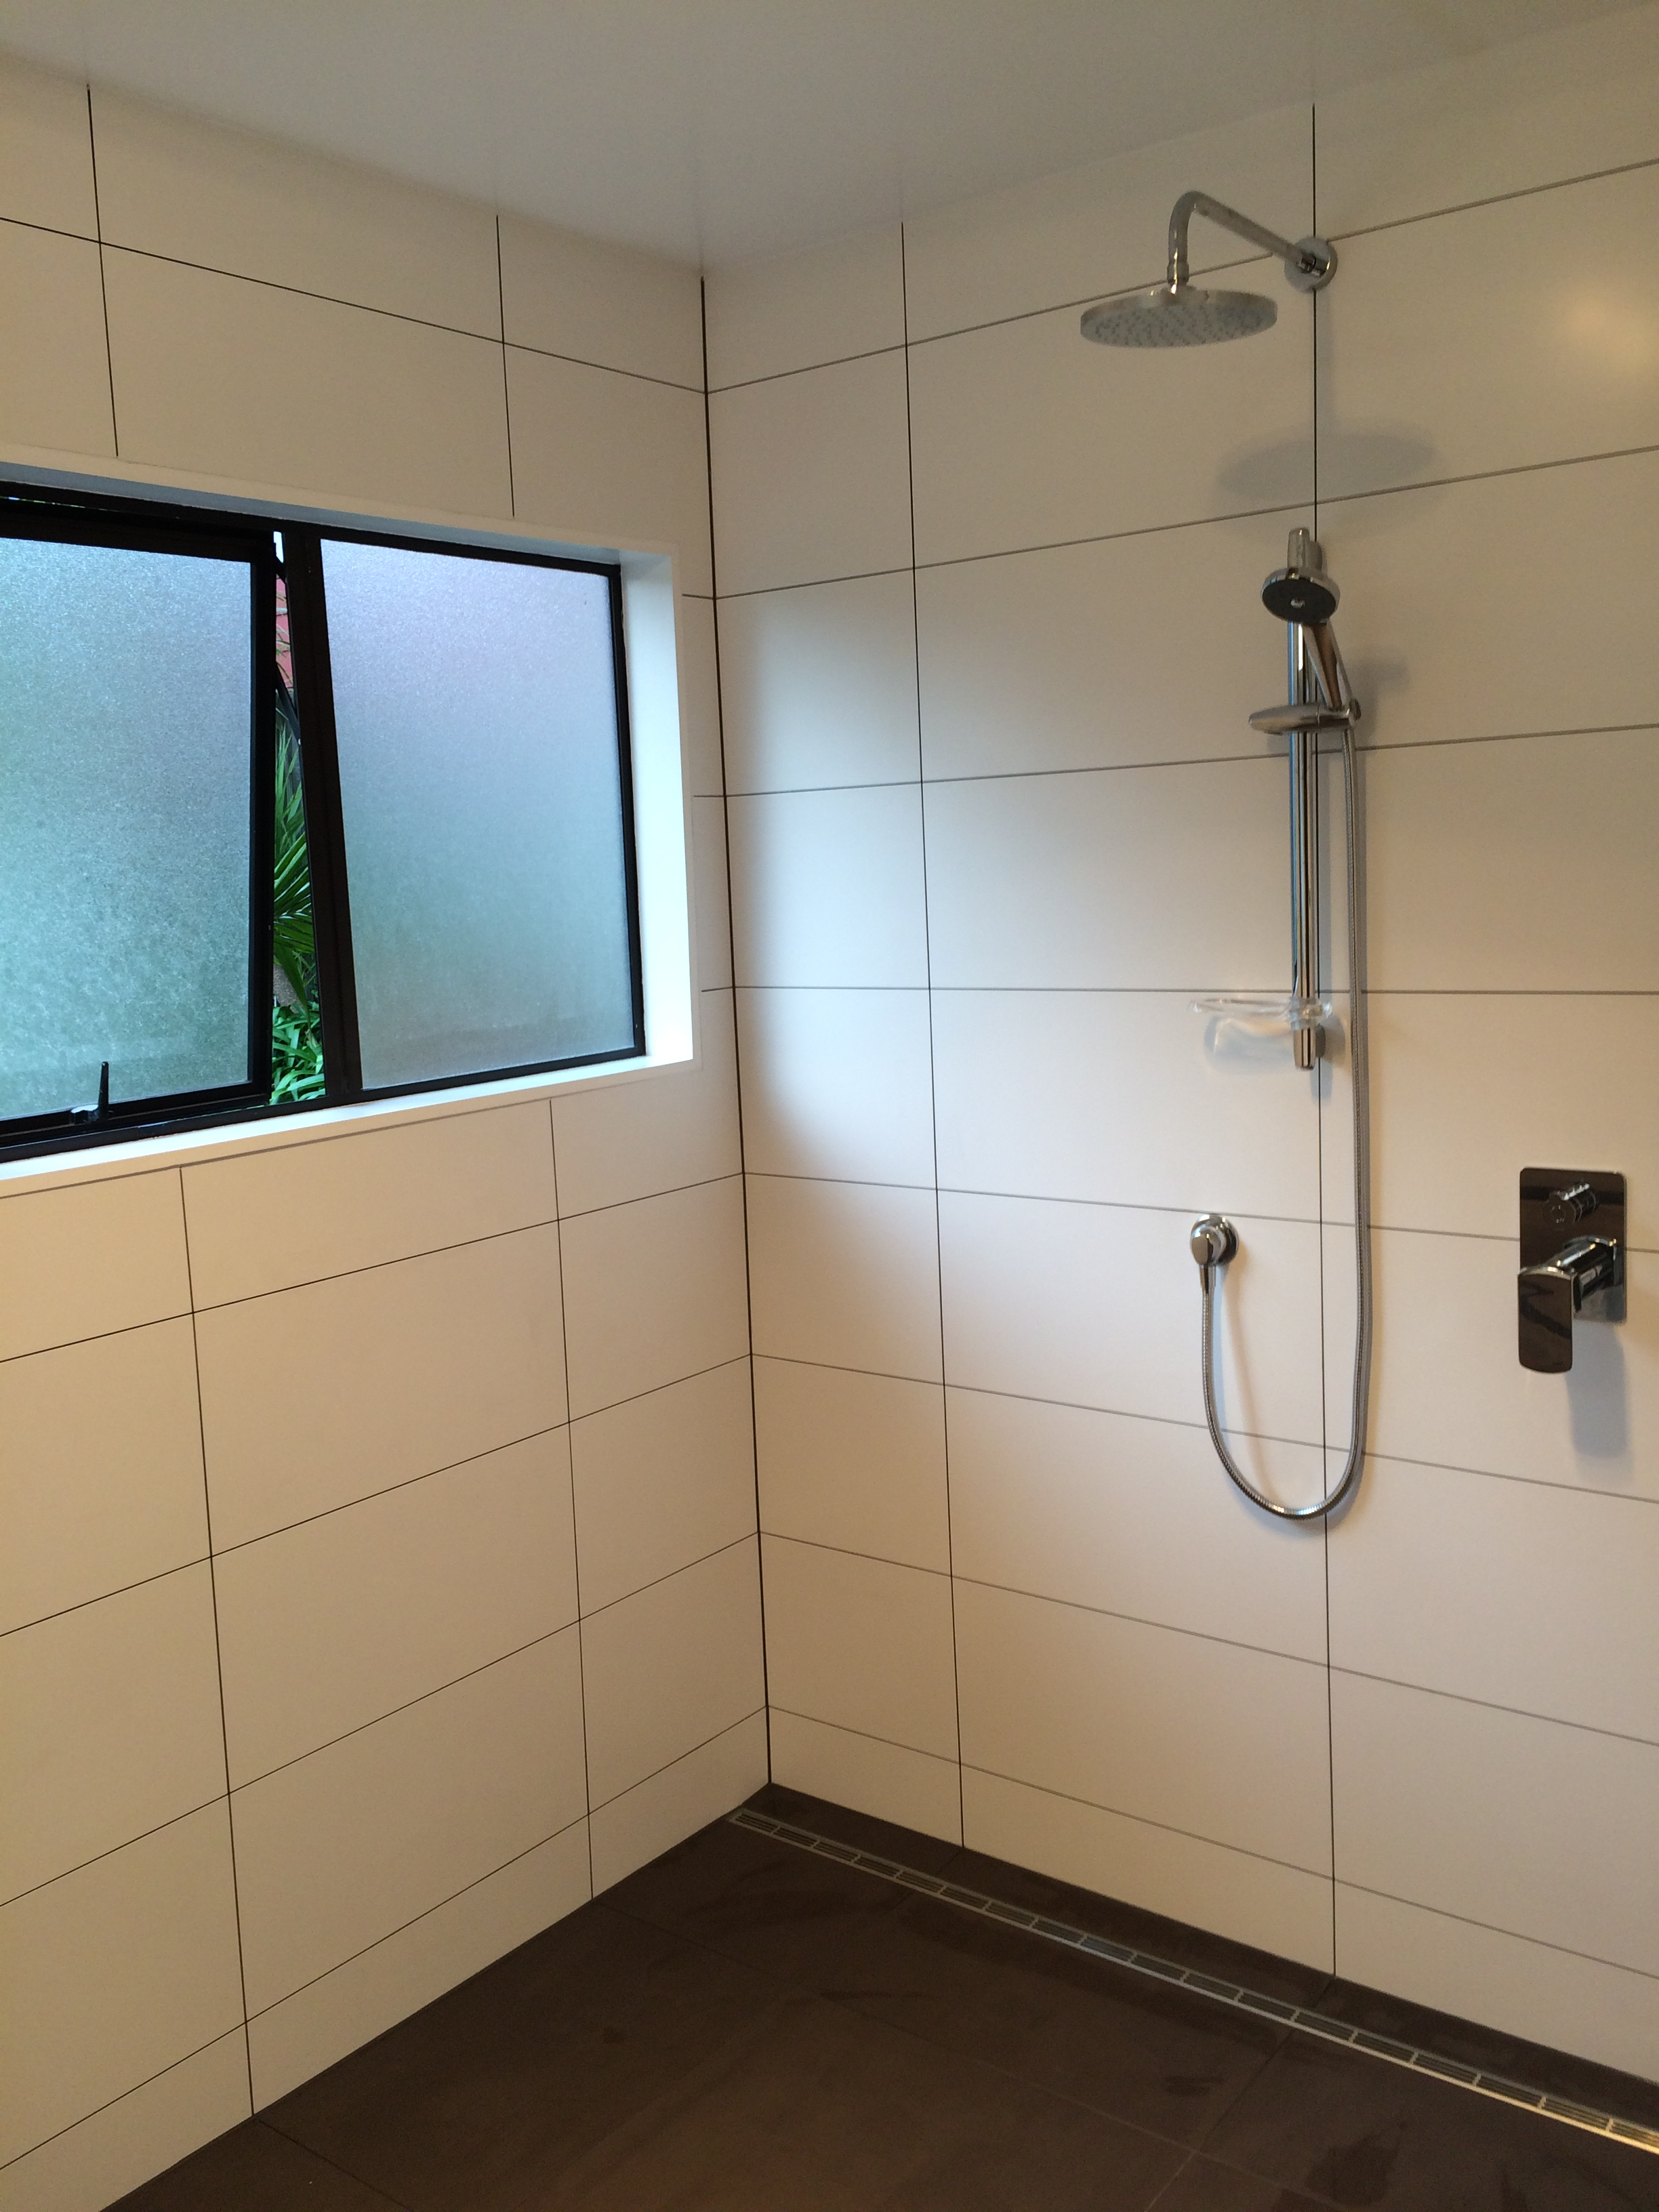 Wet area bathroom in Birkenhead development photo